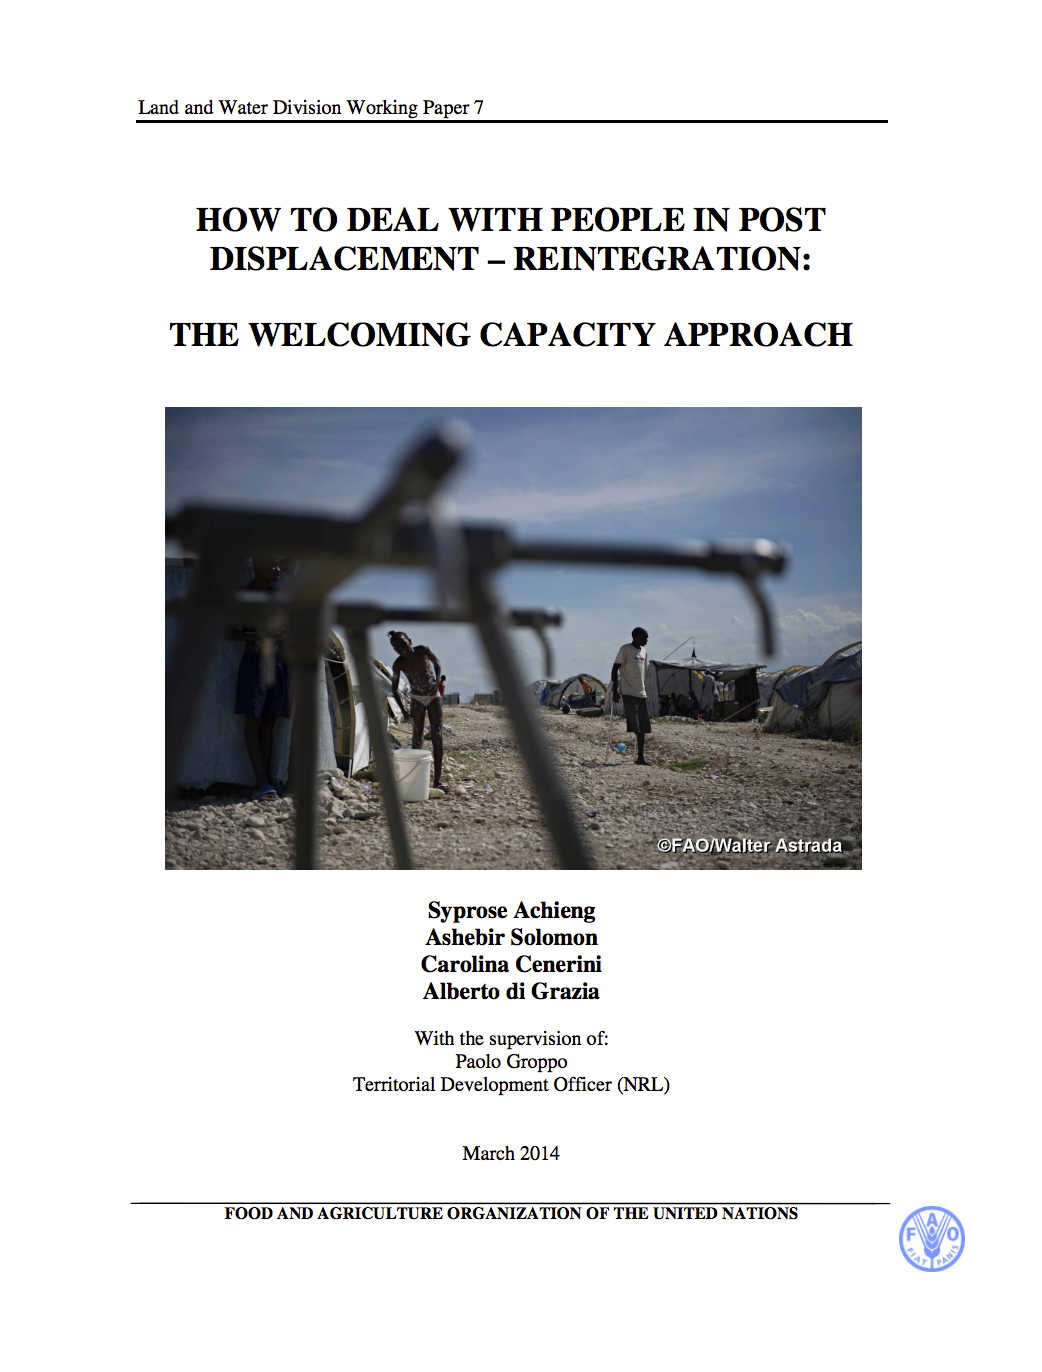 How to deal with people in post displacement - reintegration: the welcoming capacity approach cover image